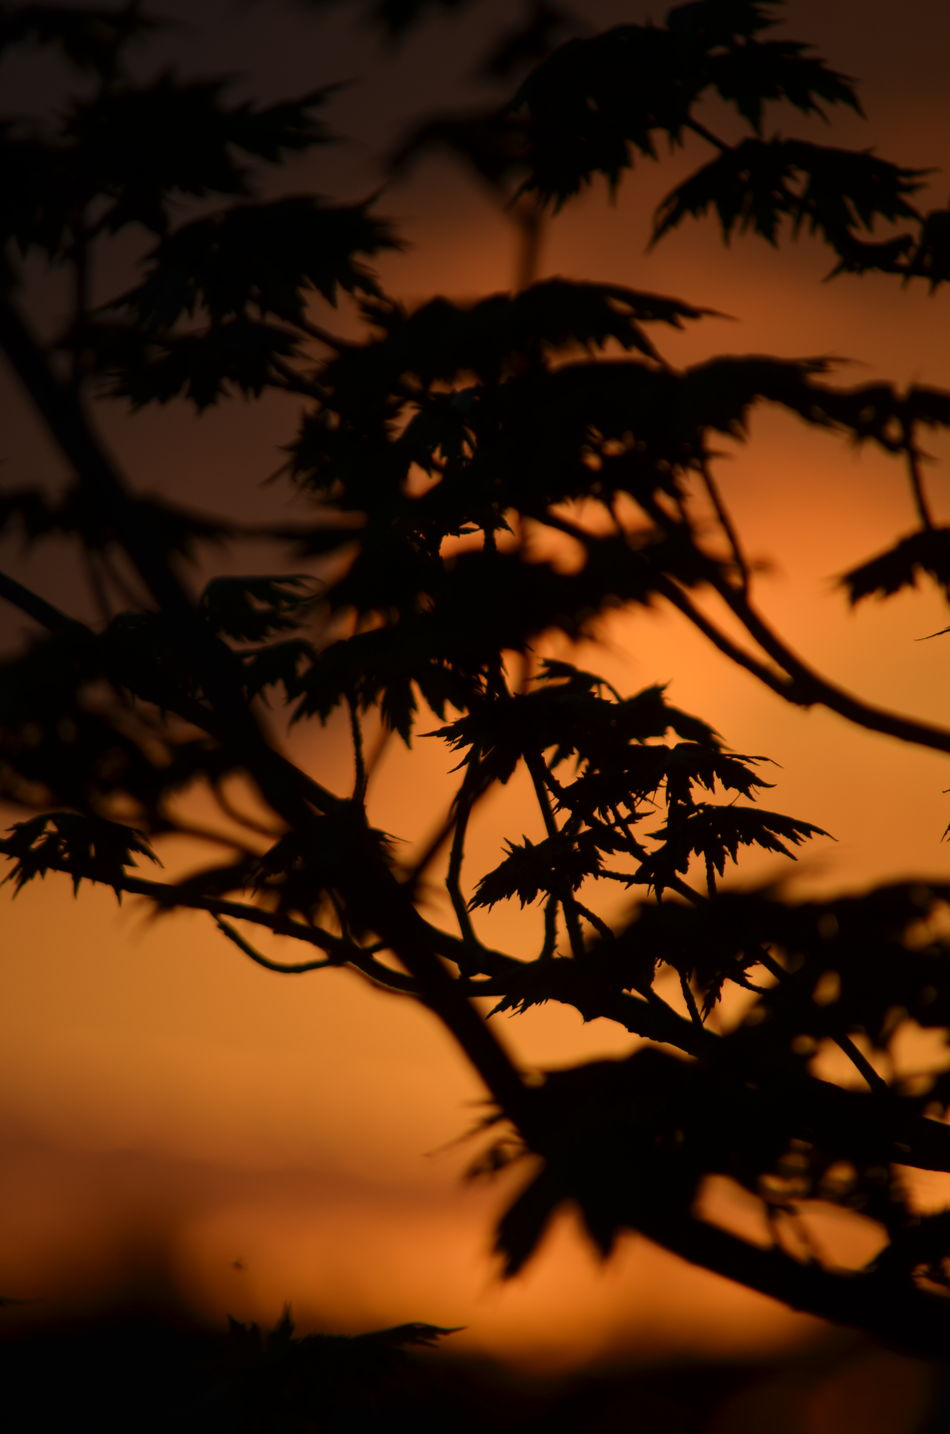 Beauty In Nature Branch Close-up Growth Nature Night No People Outdoors Plant Scenics Silhouette Sky Sunset Tranquility Tree